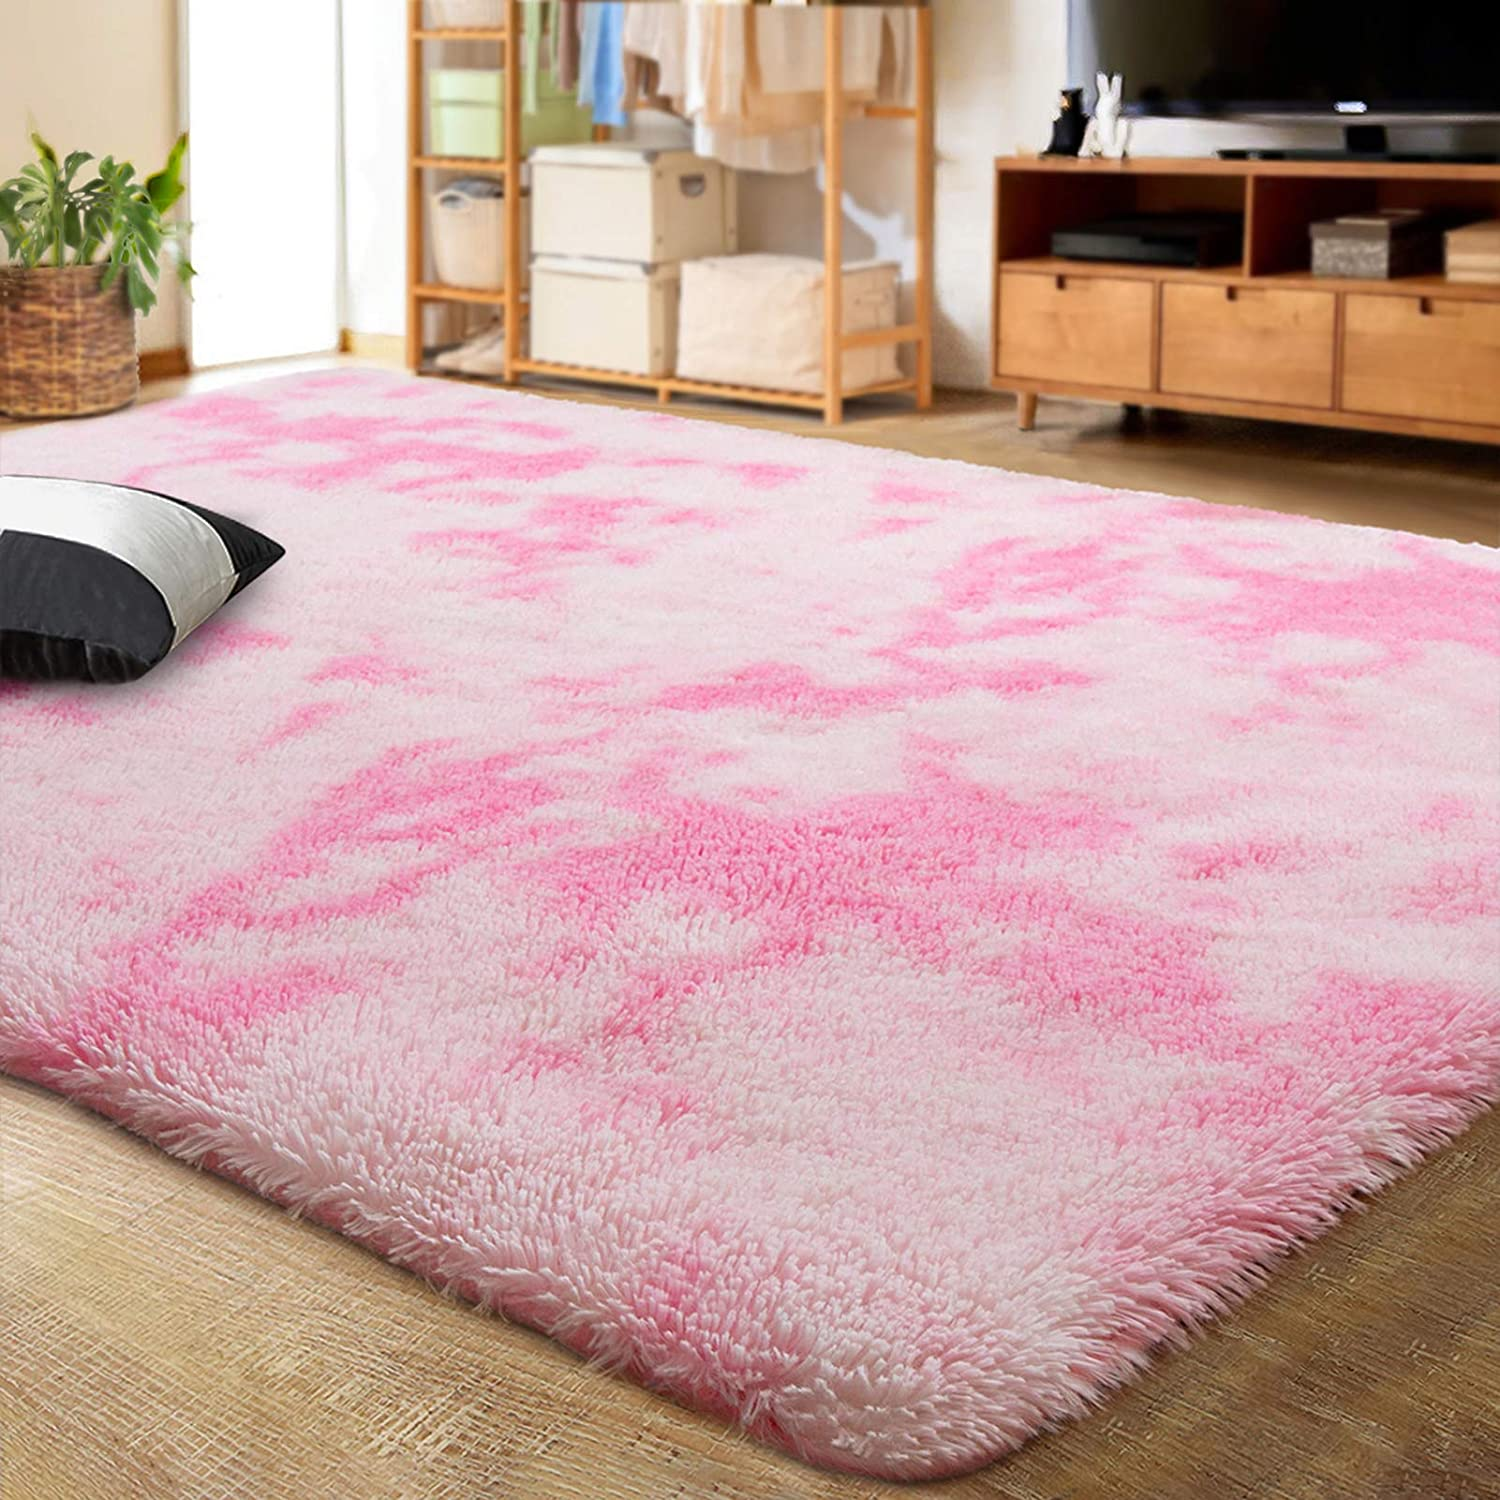 LOCHAS Luxury Velvet Shag Area Rug Modern Indoor Fluffy Rugs, Extra Comfy and Soft Carpet, Abstract Accent Rugs for Bedroom Living Room Dorm Home Girls Kids, 5x8 Feet Pink/White